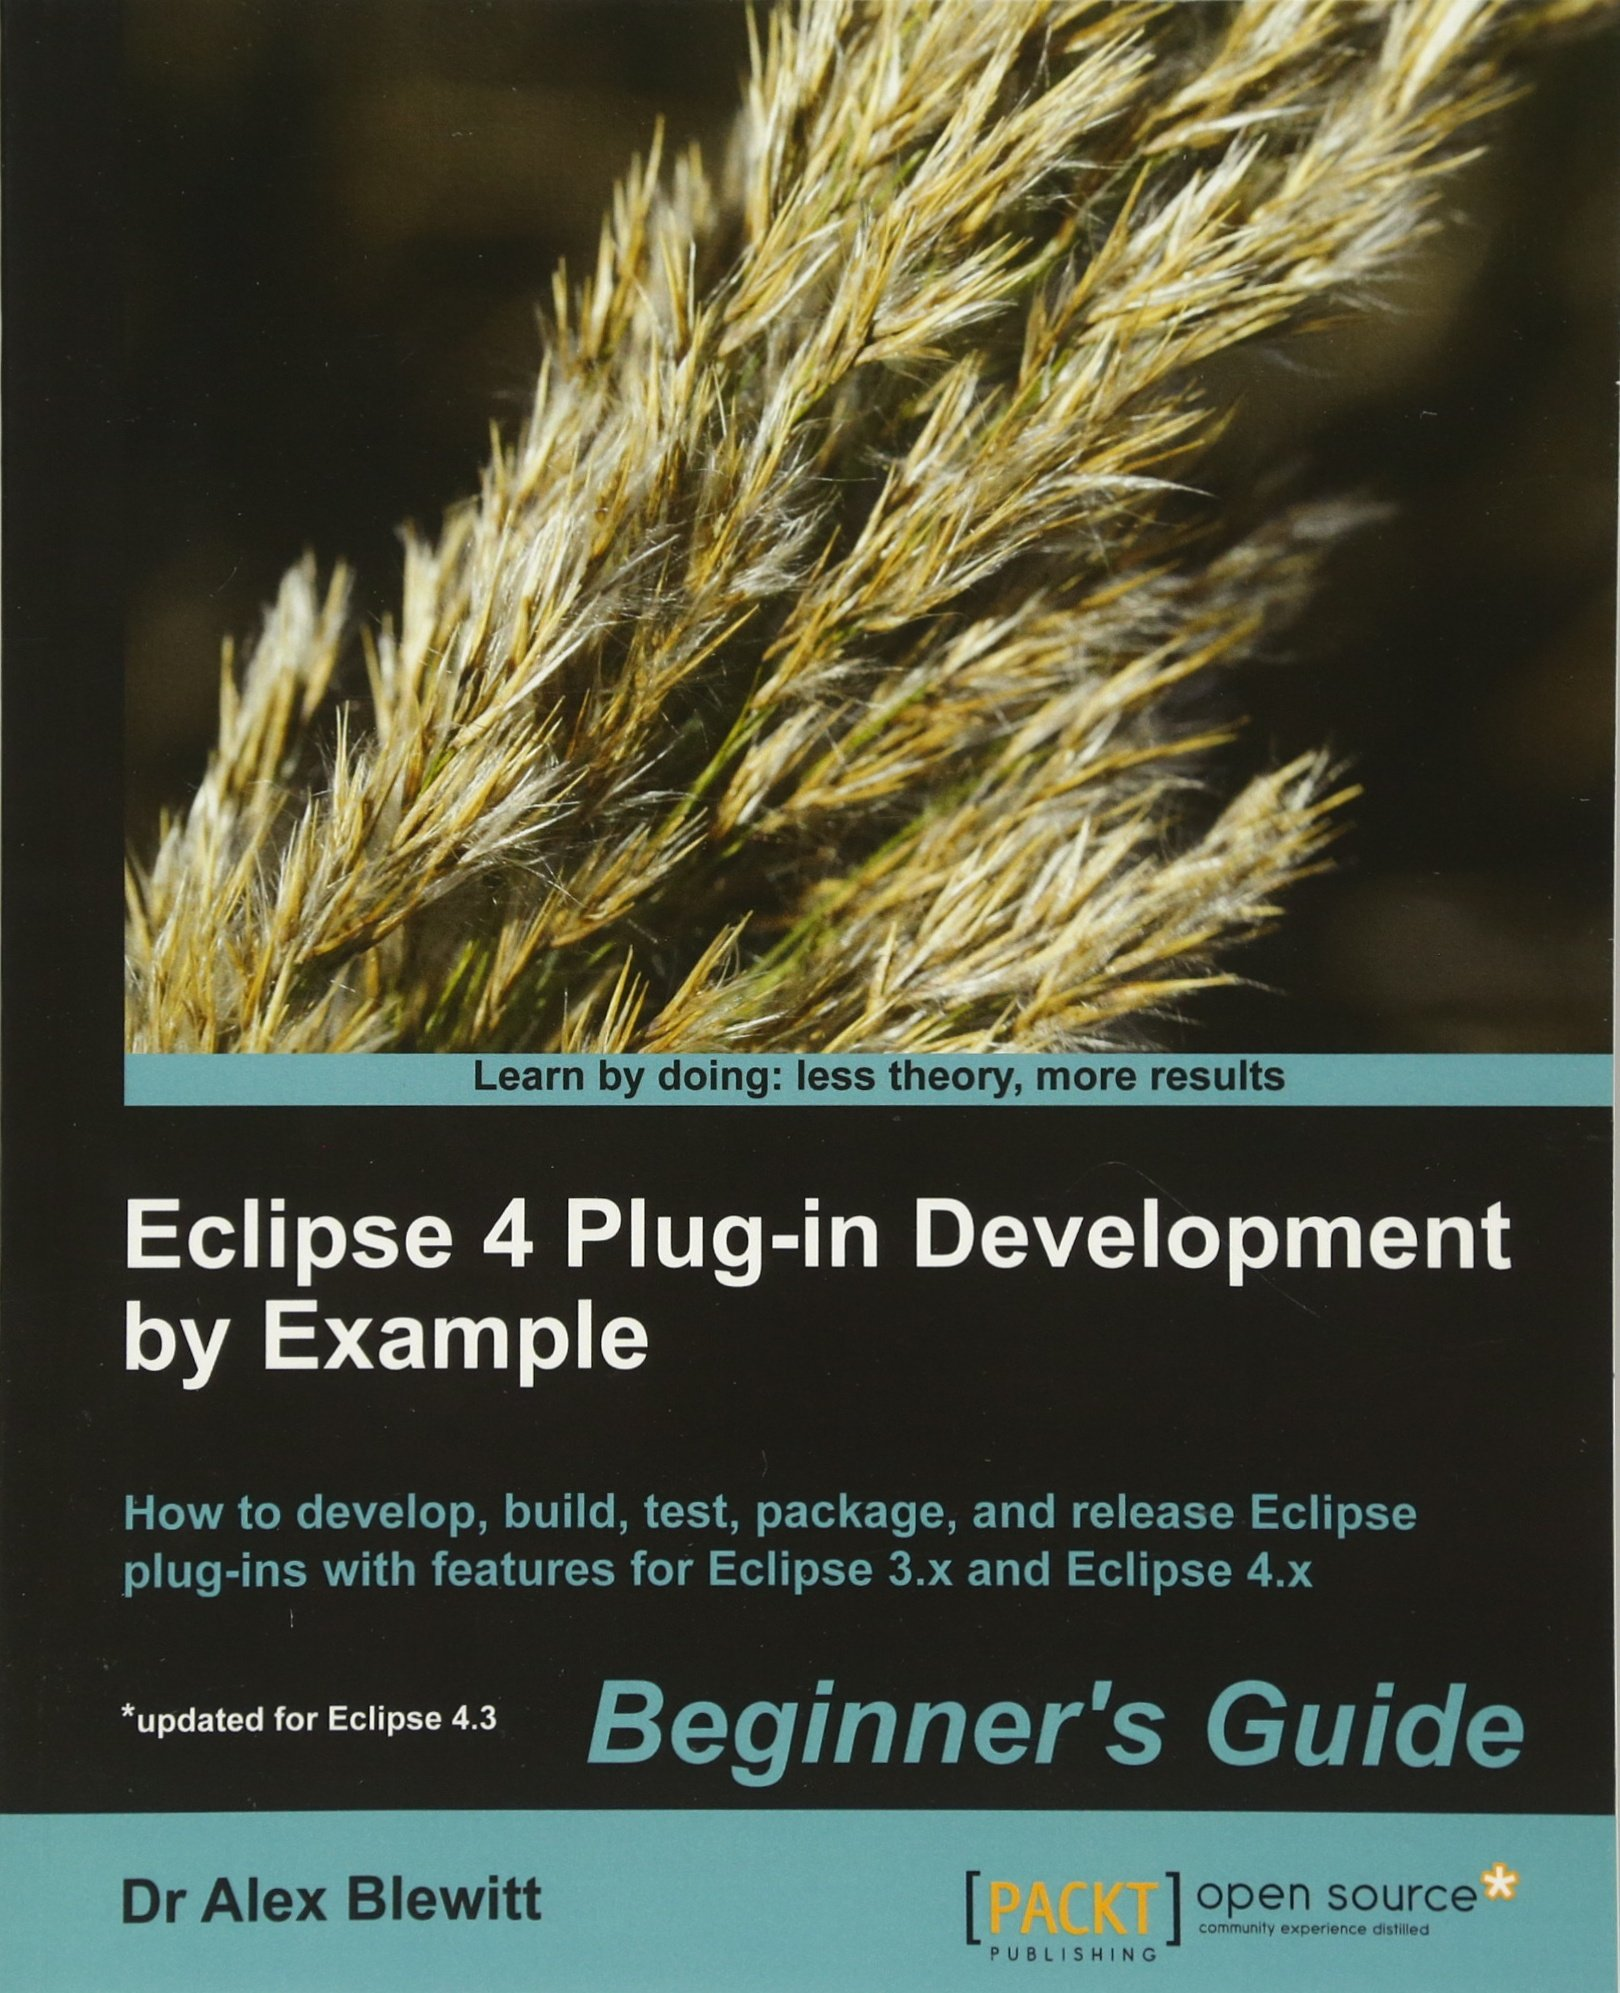 Eclipse 4 Plug-in Development by Example: Beginner's Guide pdf